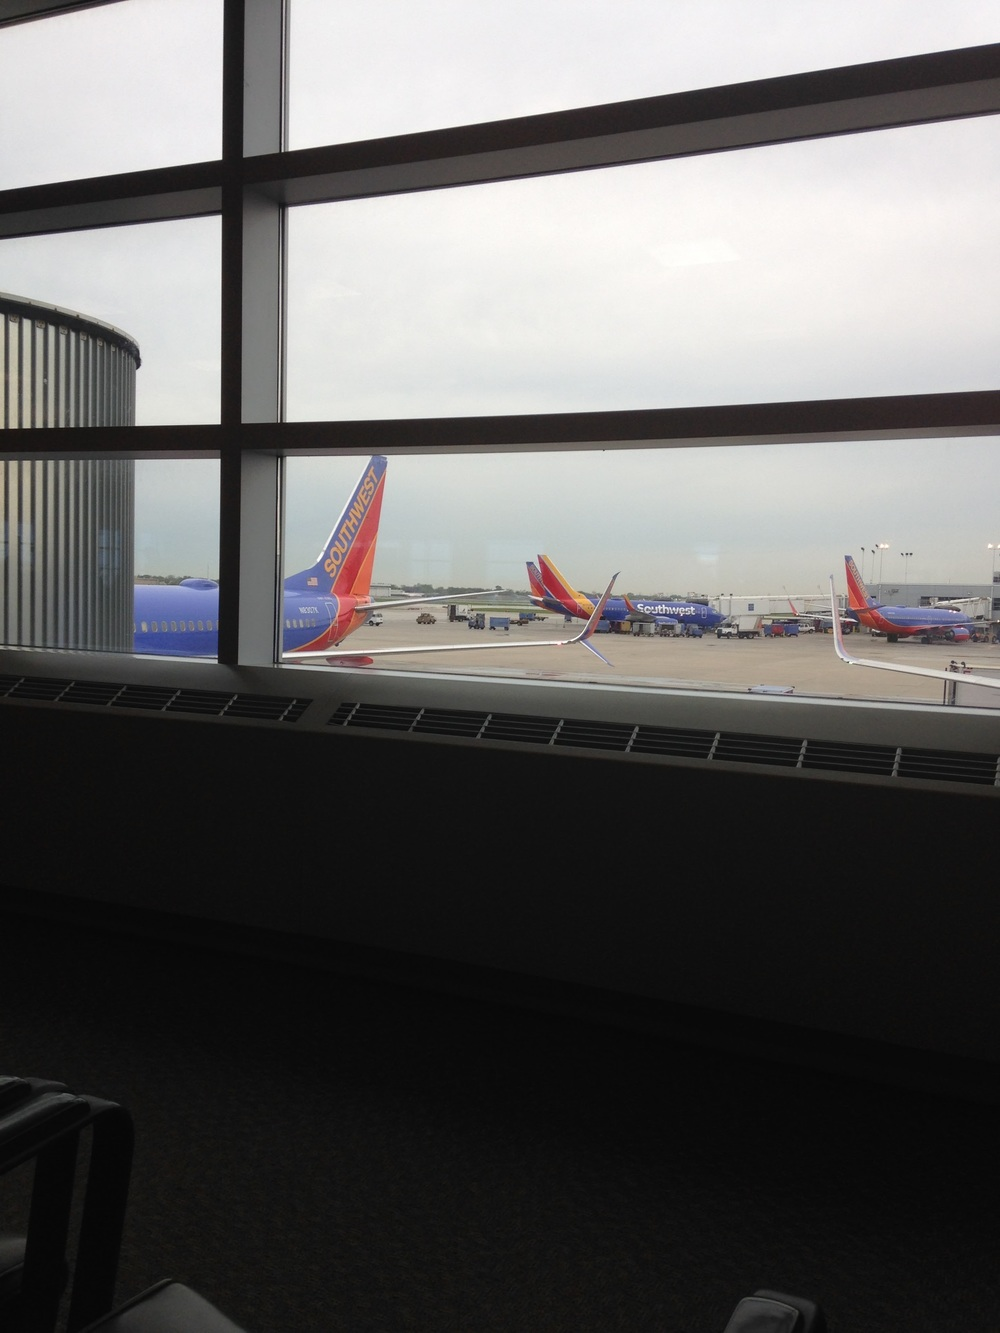 Southwest-Airlines-Airport.jpg